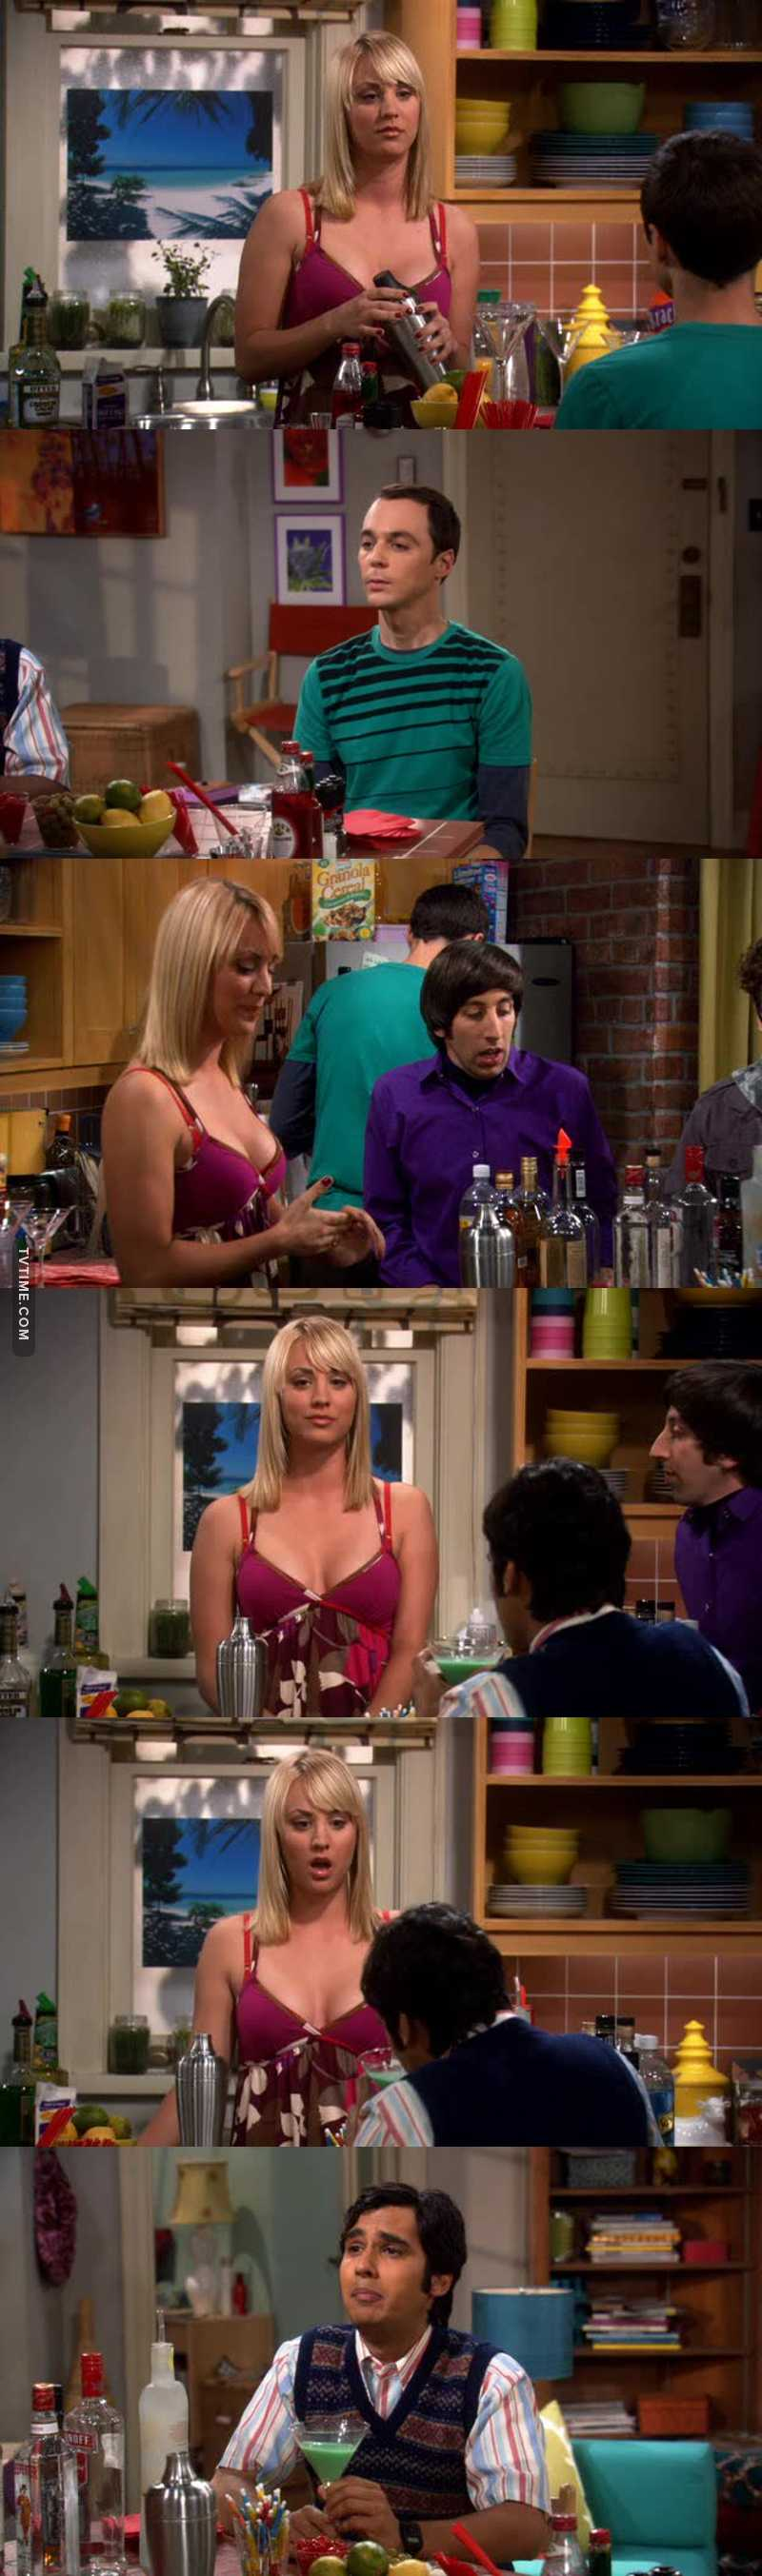 """Sheldon flipping the context around 🤣🤣🤣  """"A slippery nipple"""" 🤣🤣🤣  He finally speaks to Penny 🤣🤣😳😳"""